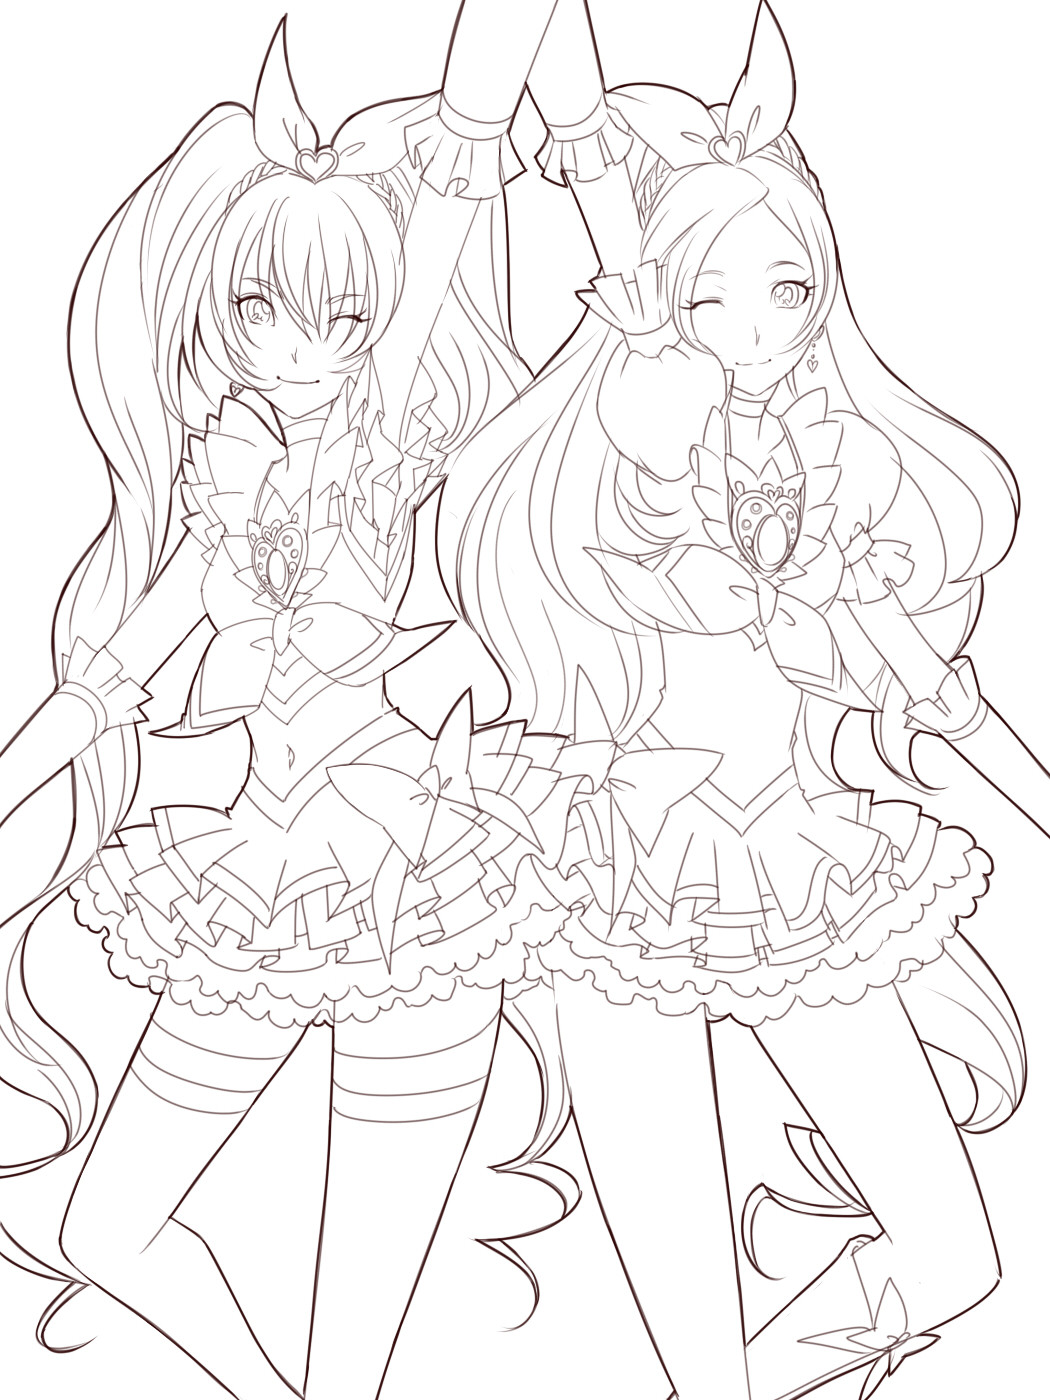 Anime Coloring Pages Printable  anime coloring pages free coloring pages for kids 6